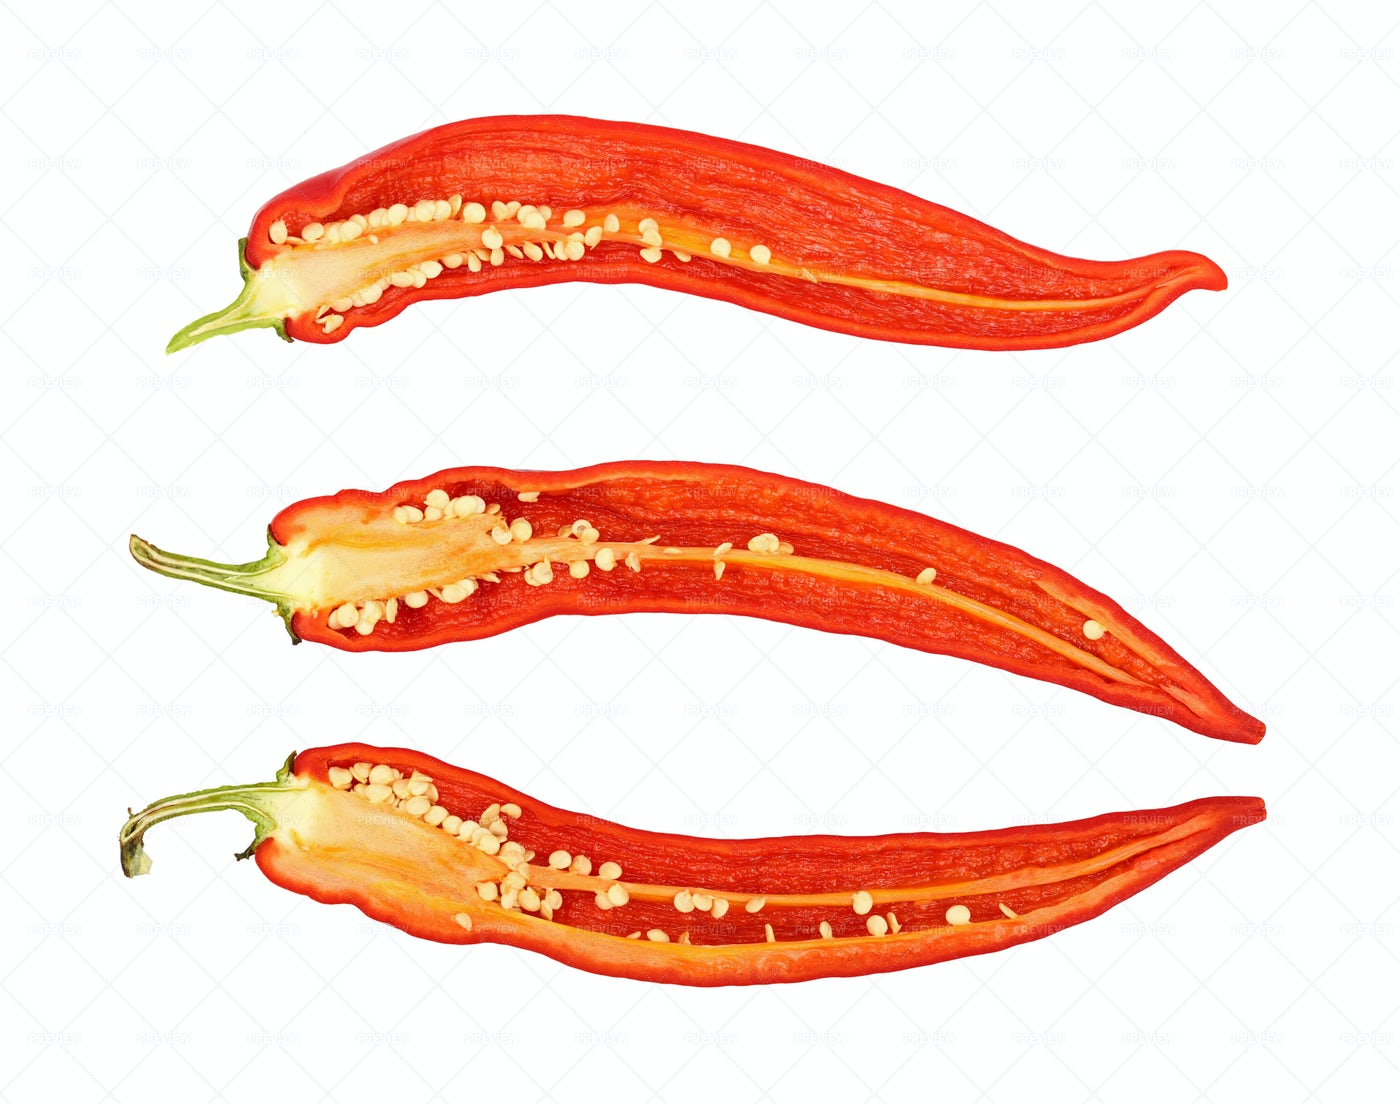 Three Cut Chili Peppers: Stock Photos